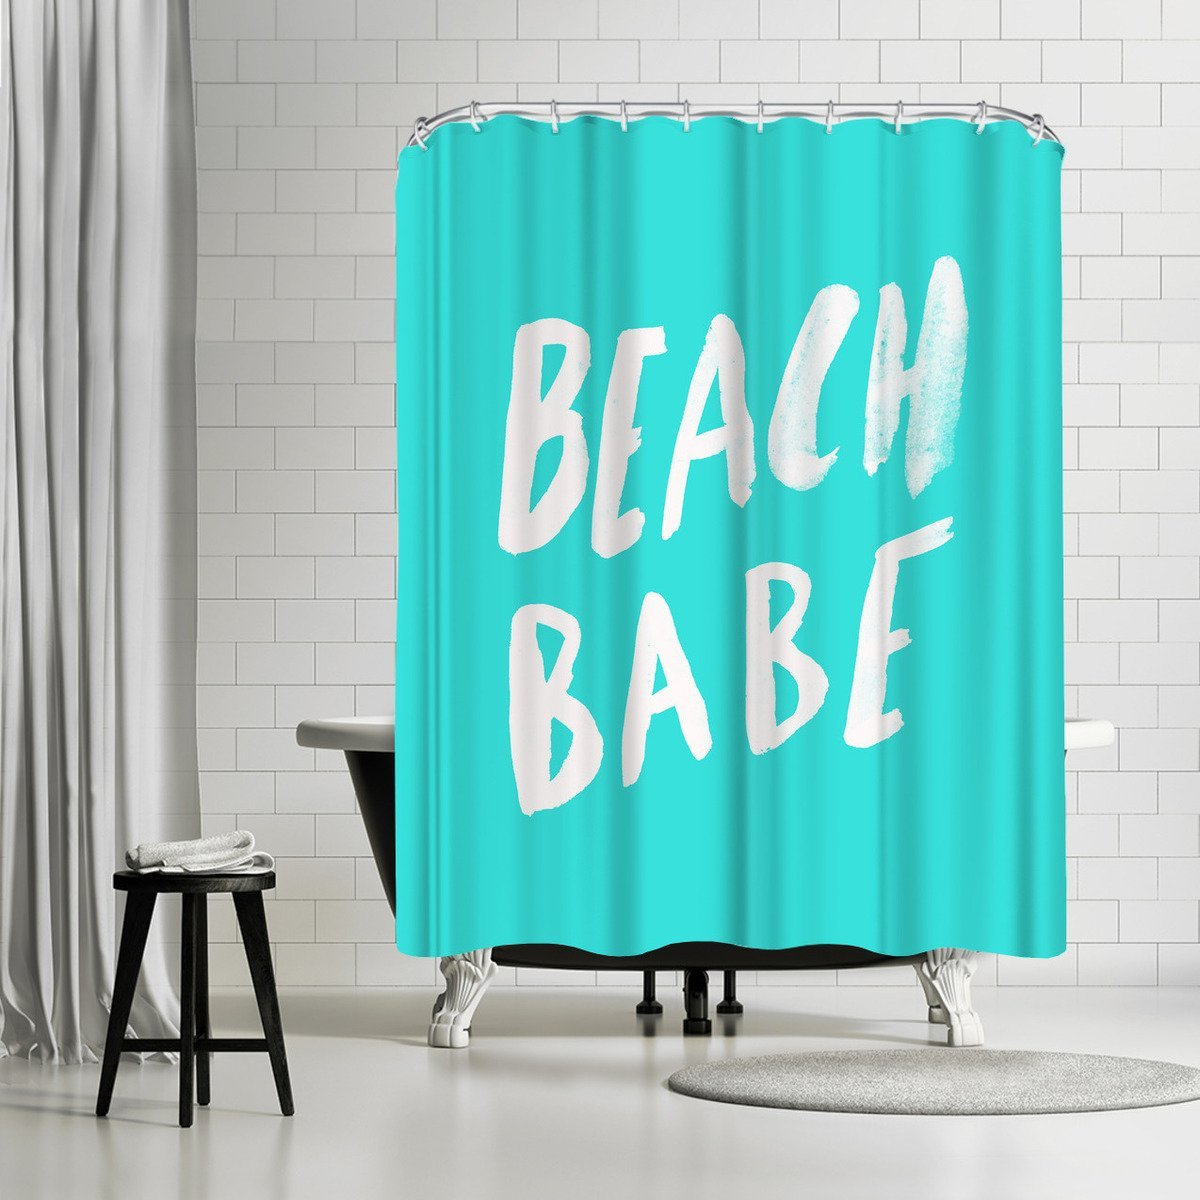 Beach Babe X Turquoise by Leah Flores Shower Curtain - Shower Curtain - Americanflat